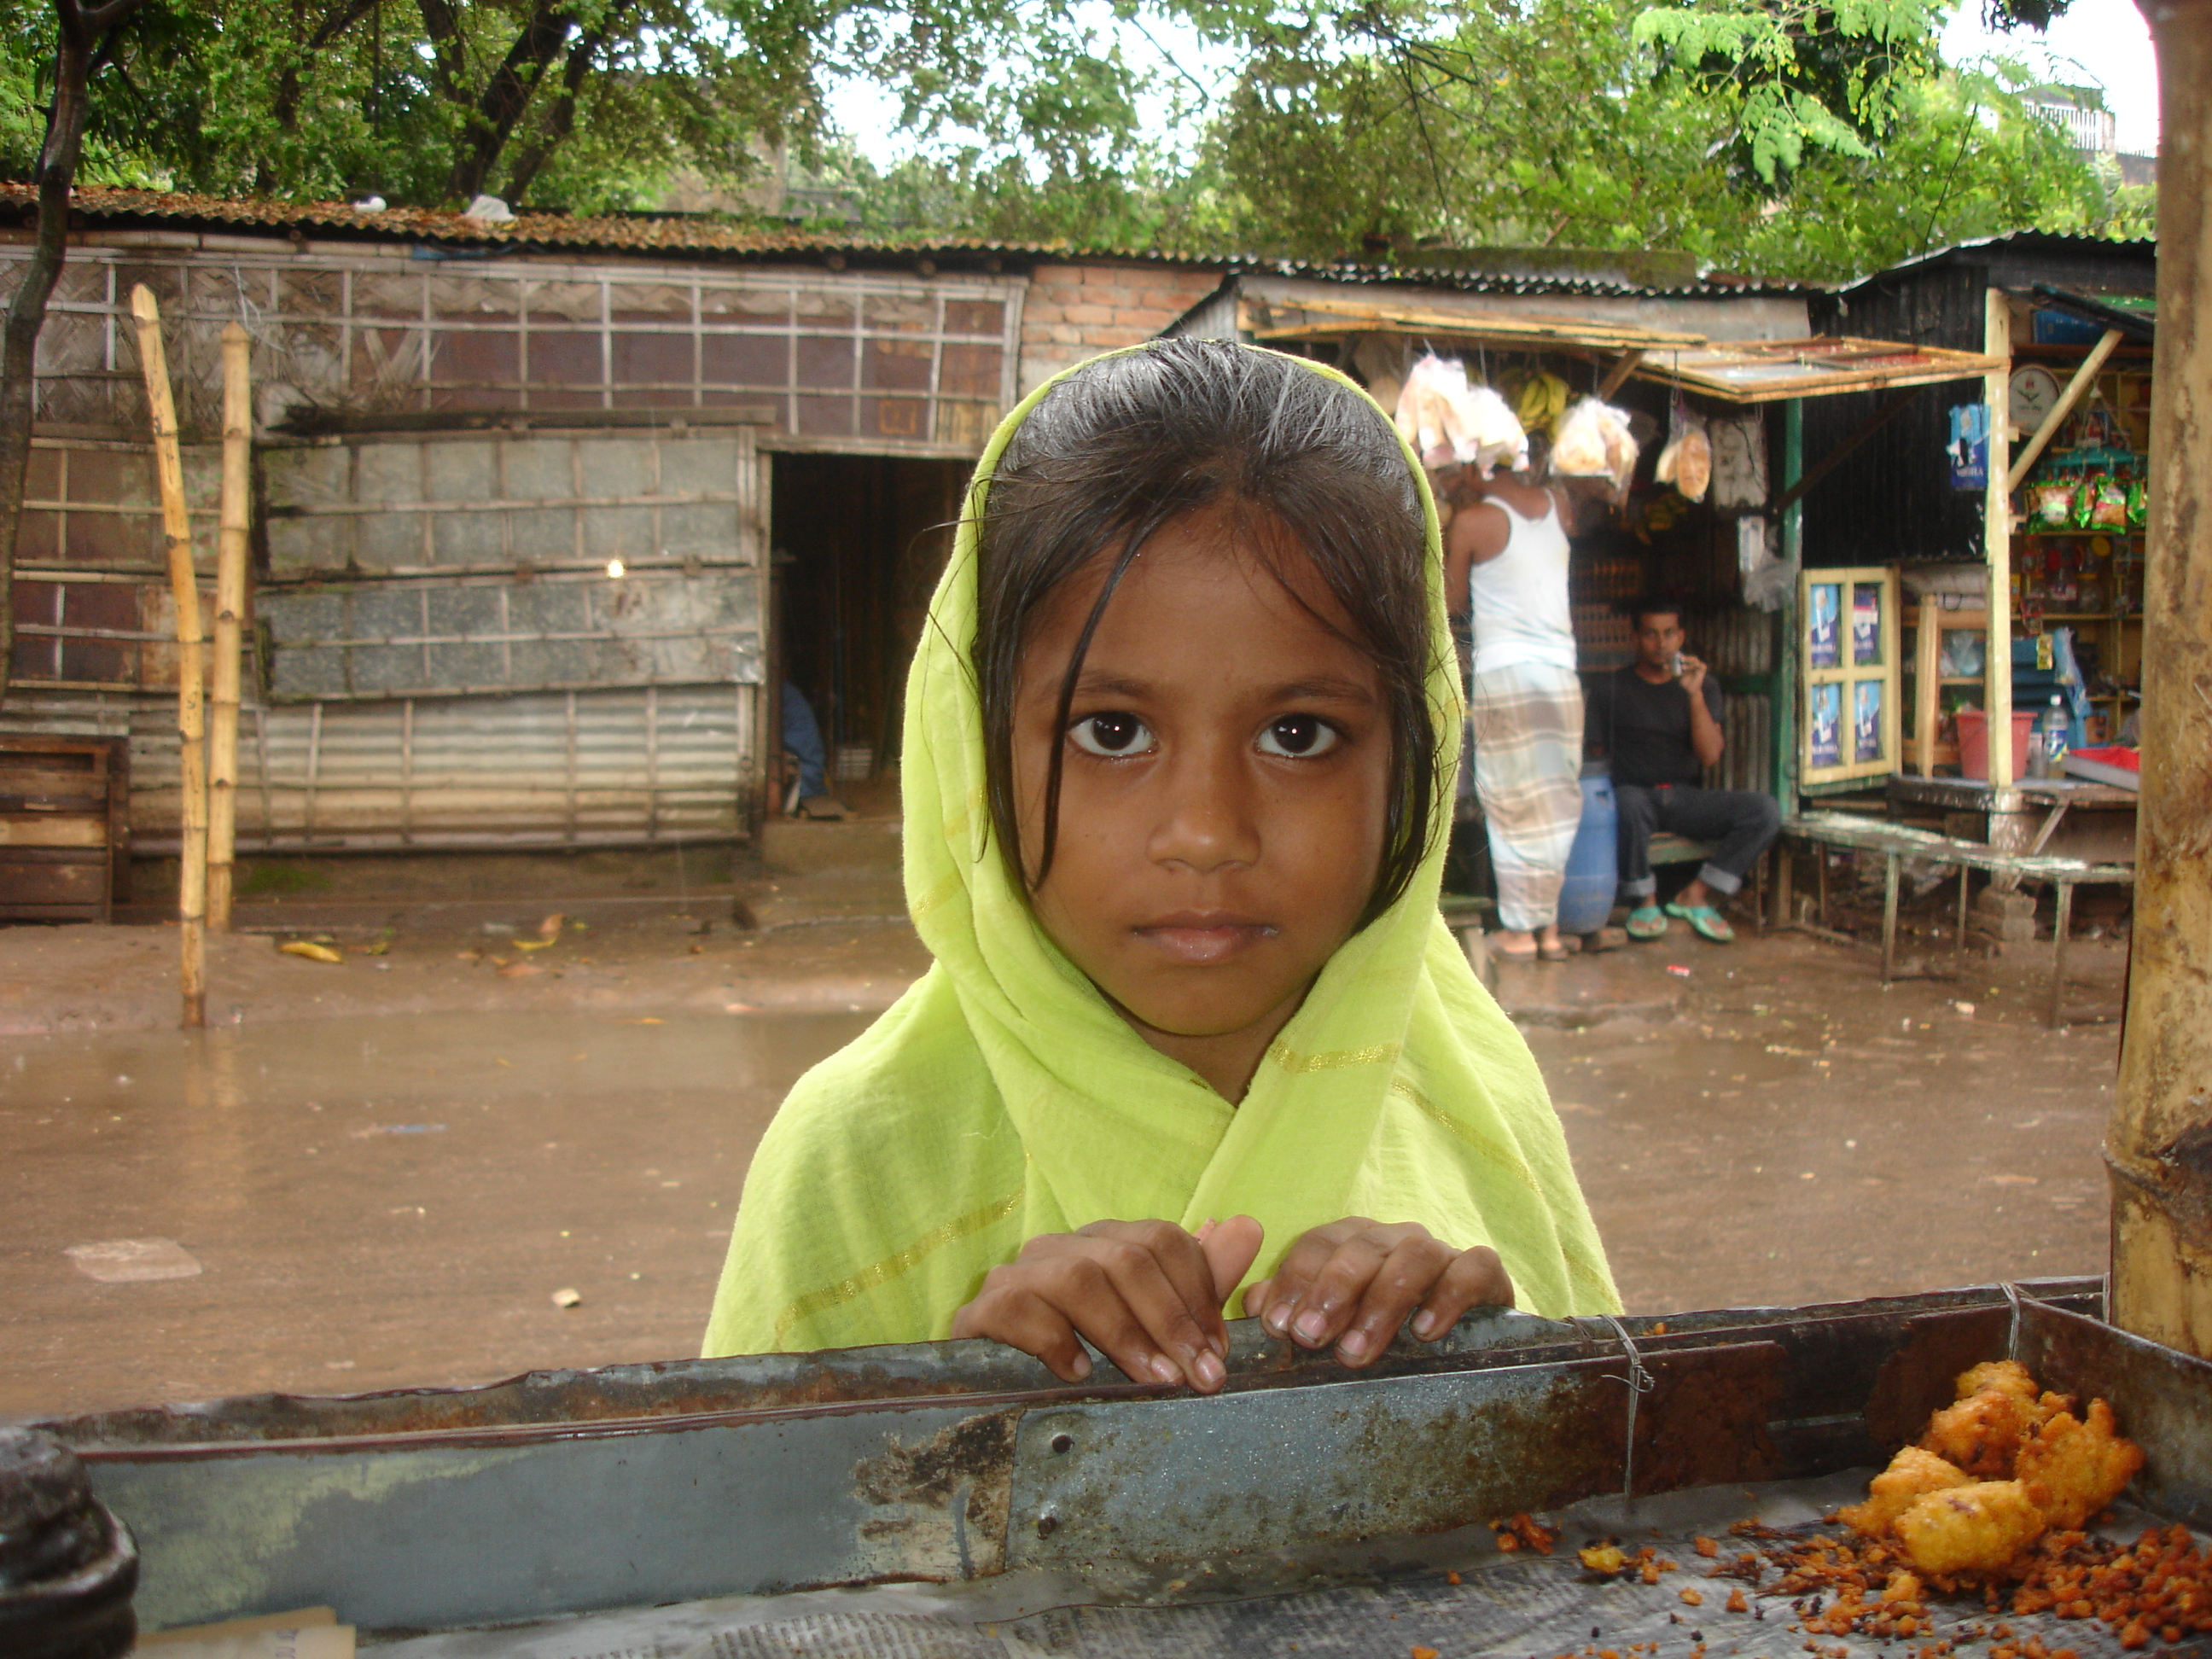 A young Bihari girl in Mirpur District, Dhaka. There are more than 200,000 Biharis in Bangladesh today